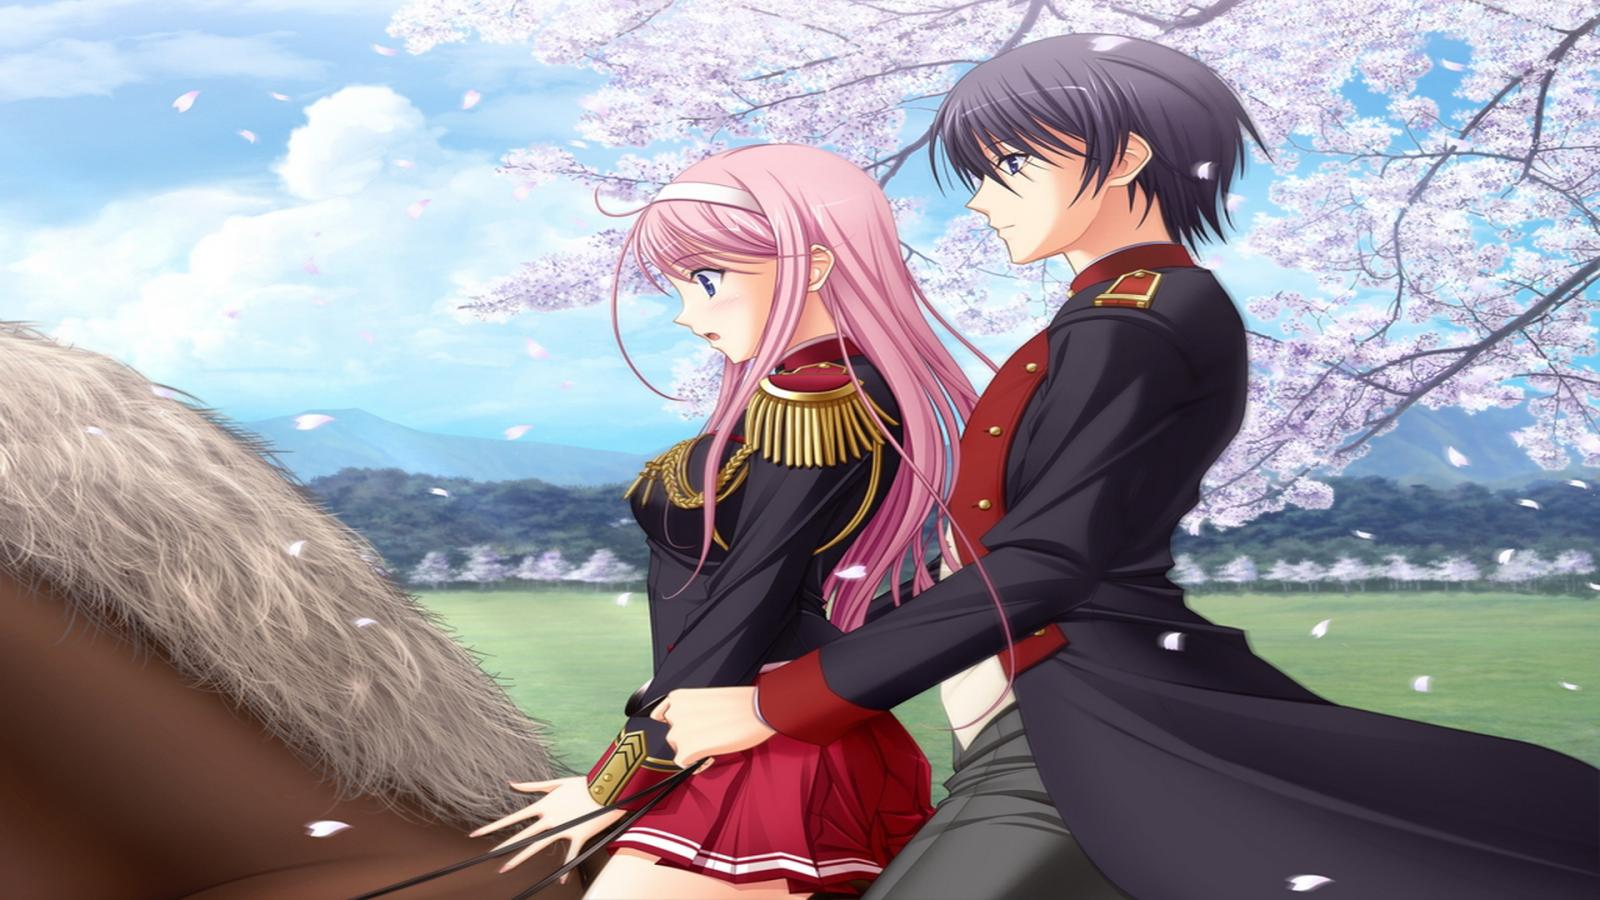 Love Anime HD Wallpapers 1600x900 Anime Wallpapers 1600x900 Download 1600x900